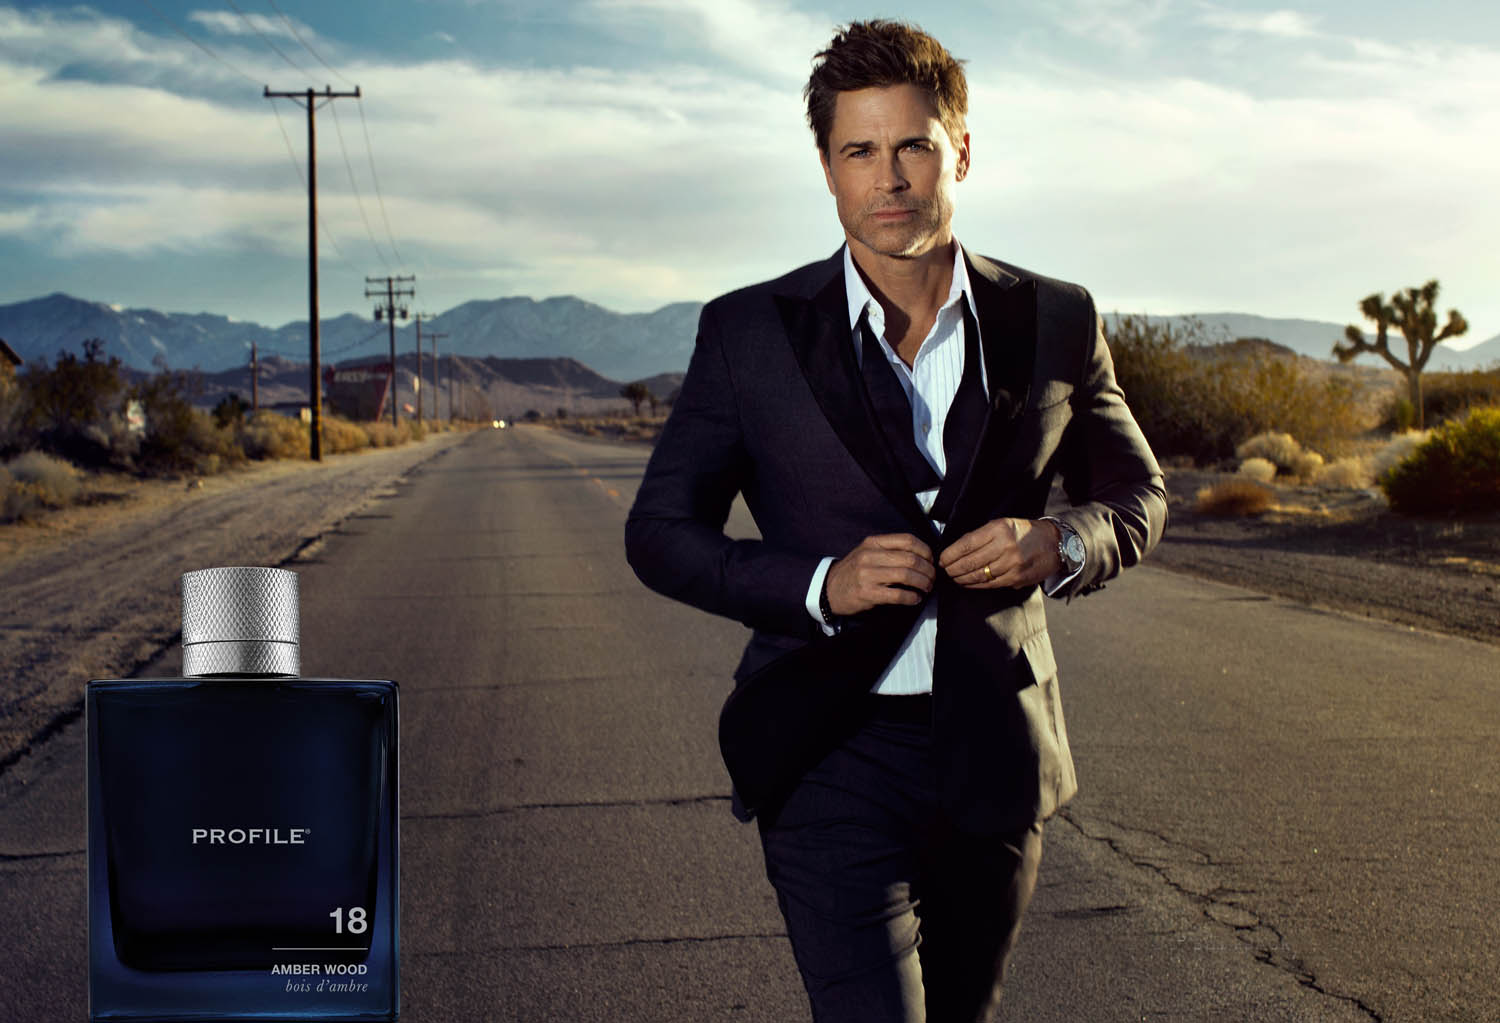 Rob Lowe, Profile For Men, 18 Amber Wood fragrance